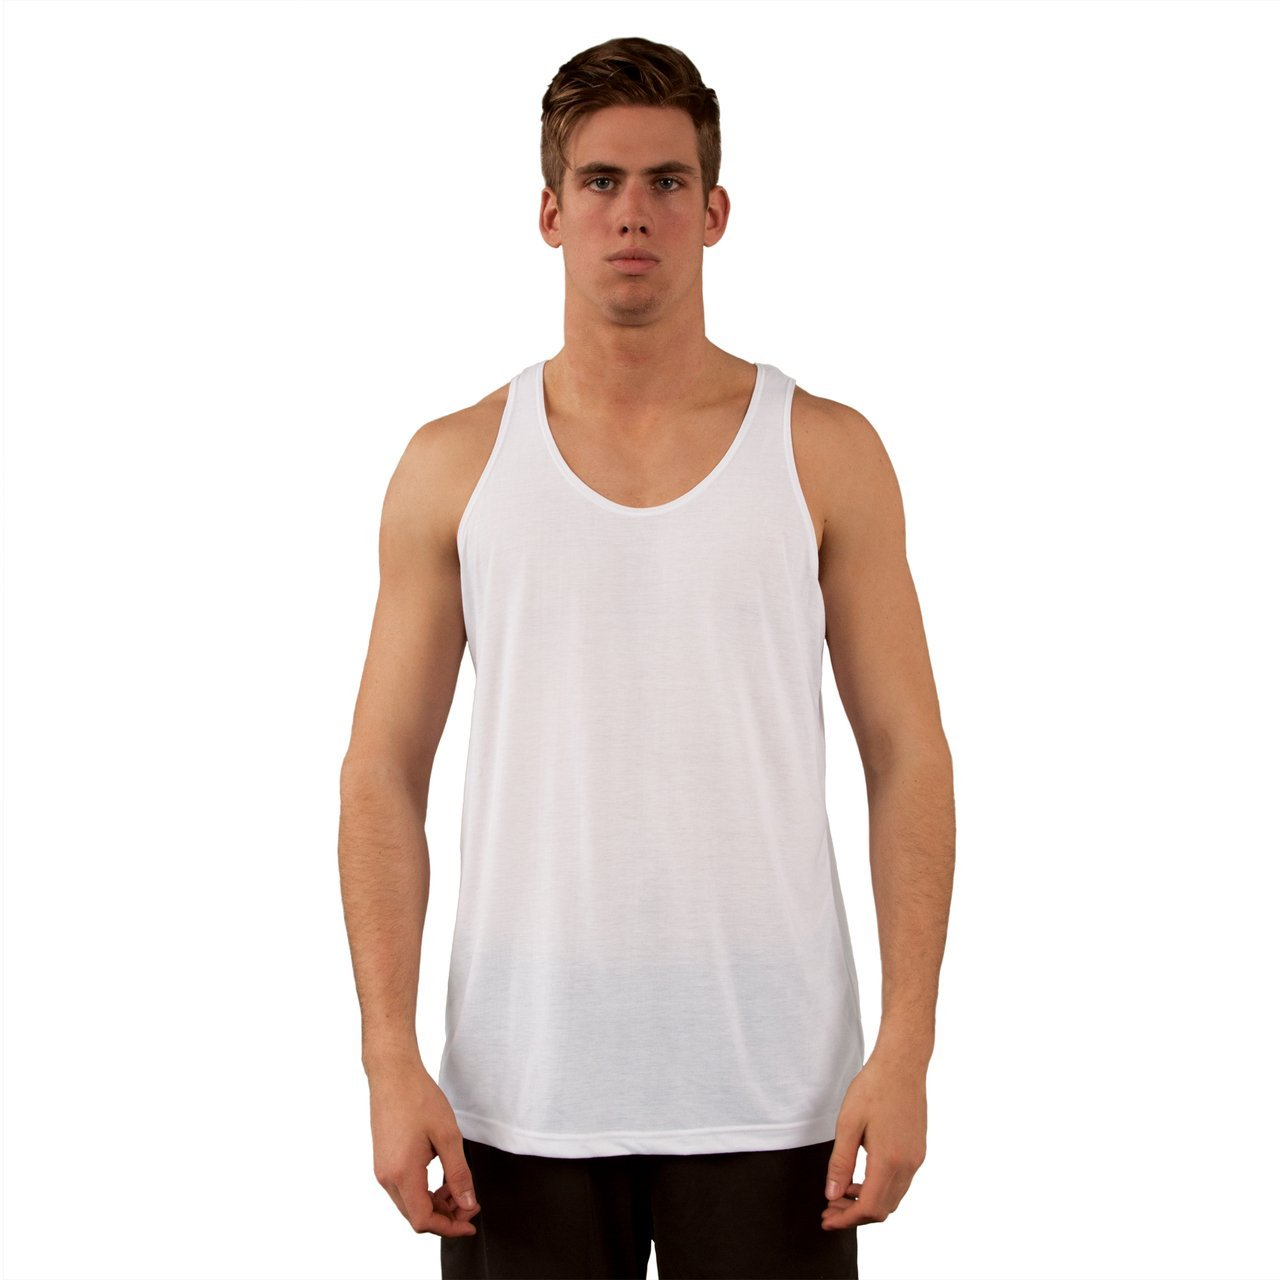 T100WH Men's Fashion Fit Tank Top